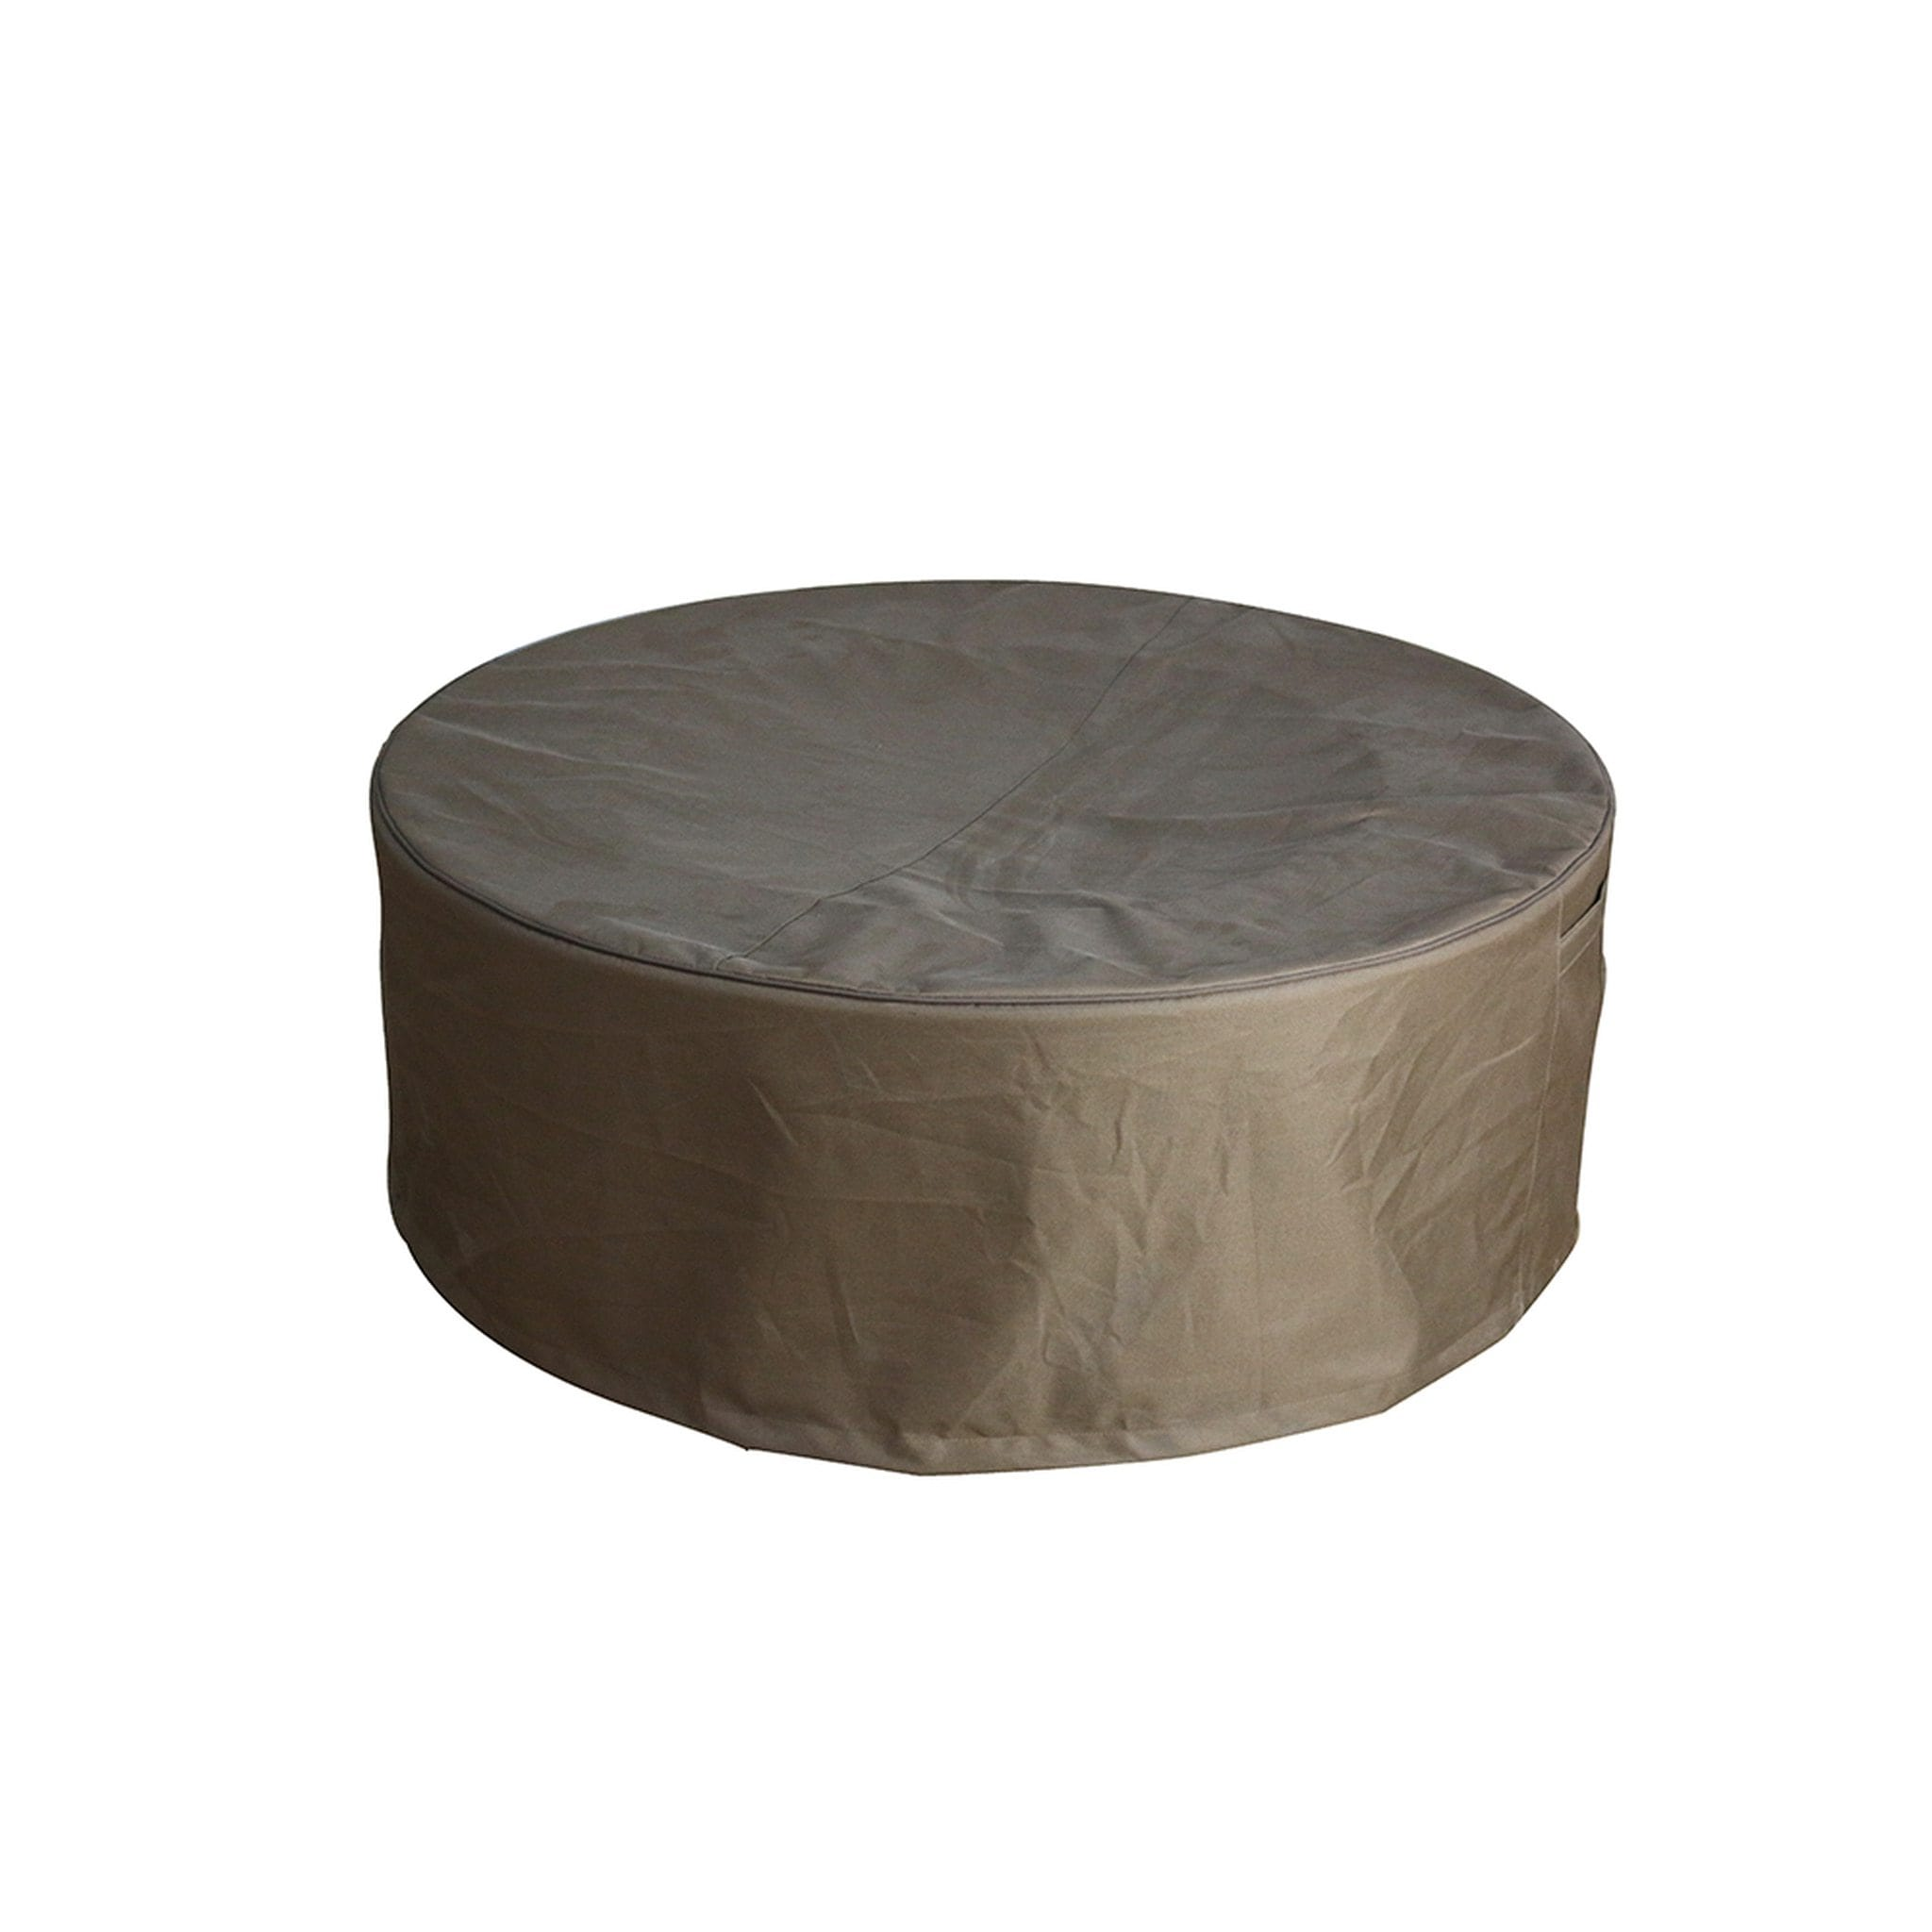 Elementi Boulder Fire Pit Canvas Cover EL-OFG110-CC1_1 Accessories Elementi